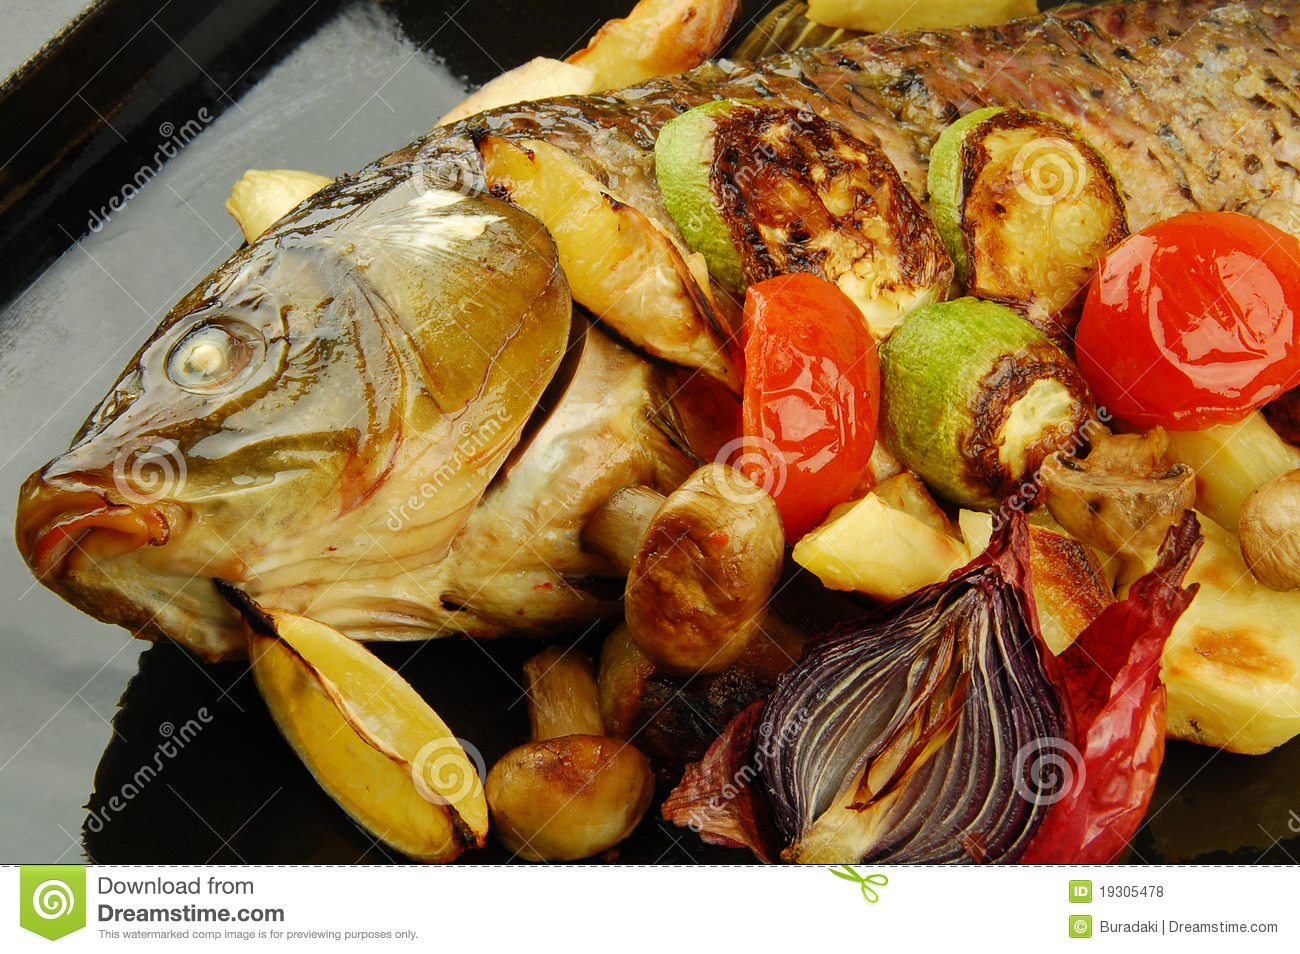 Baked fish with vegetables royalty free stock photos for Fish with vegetables